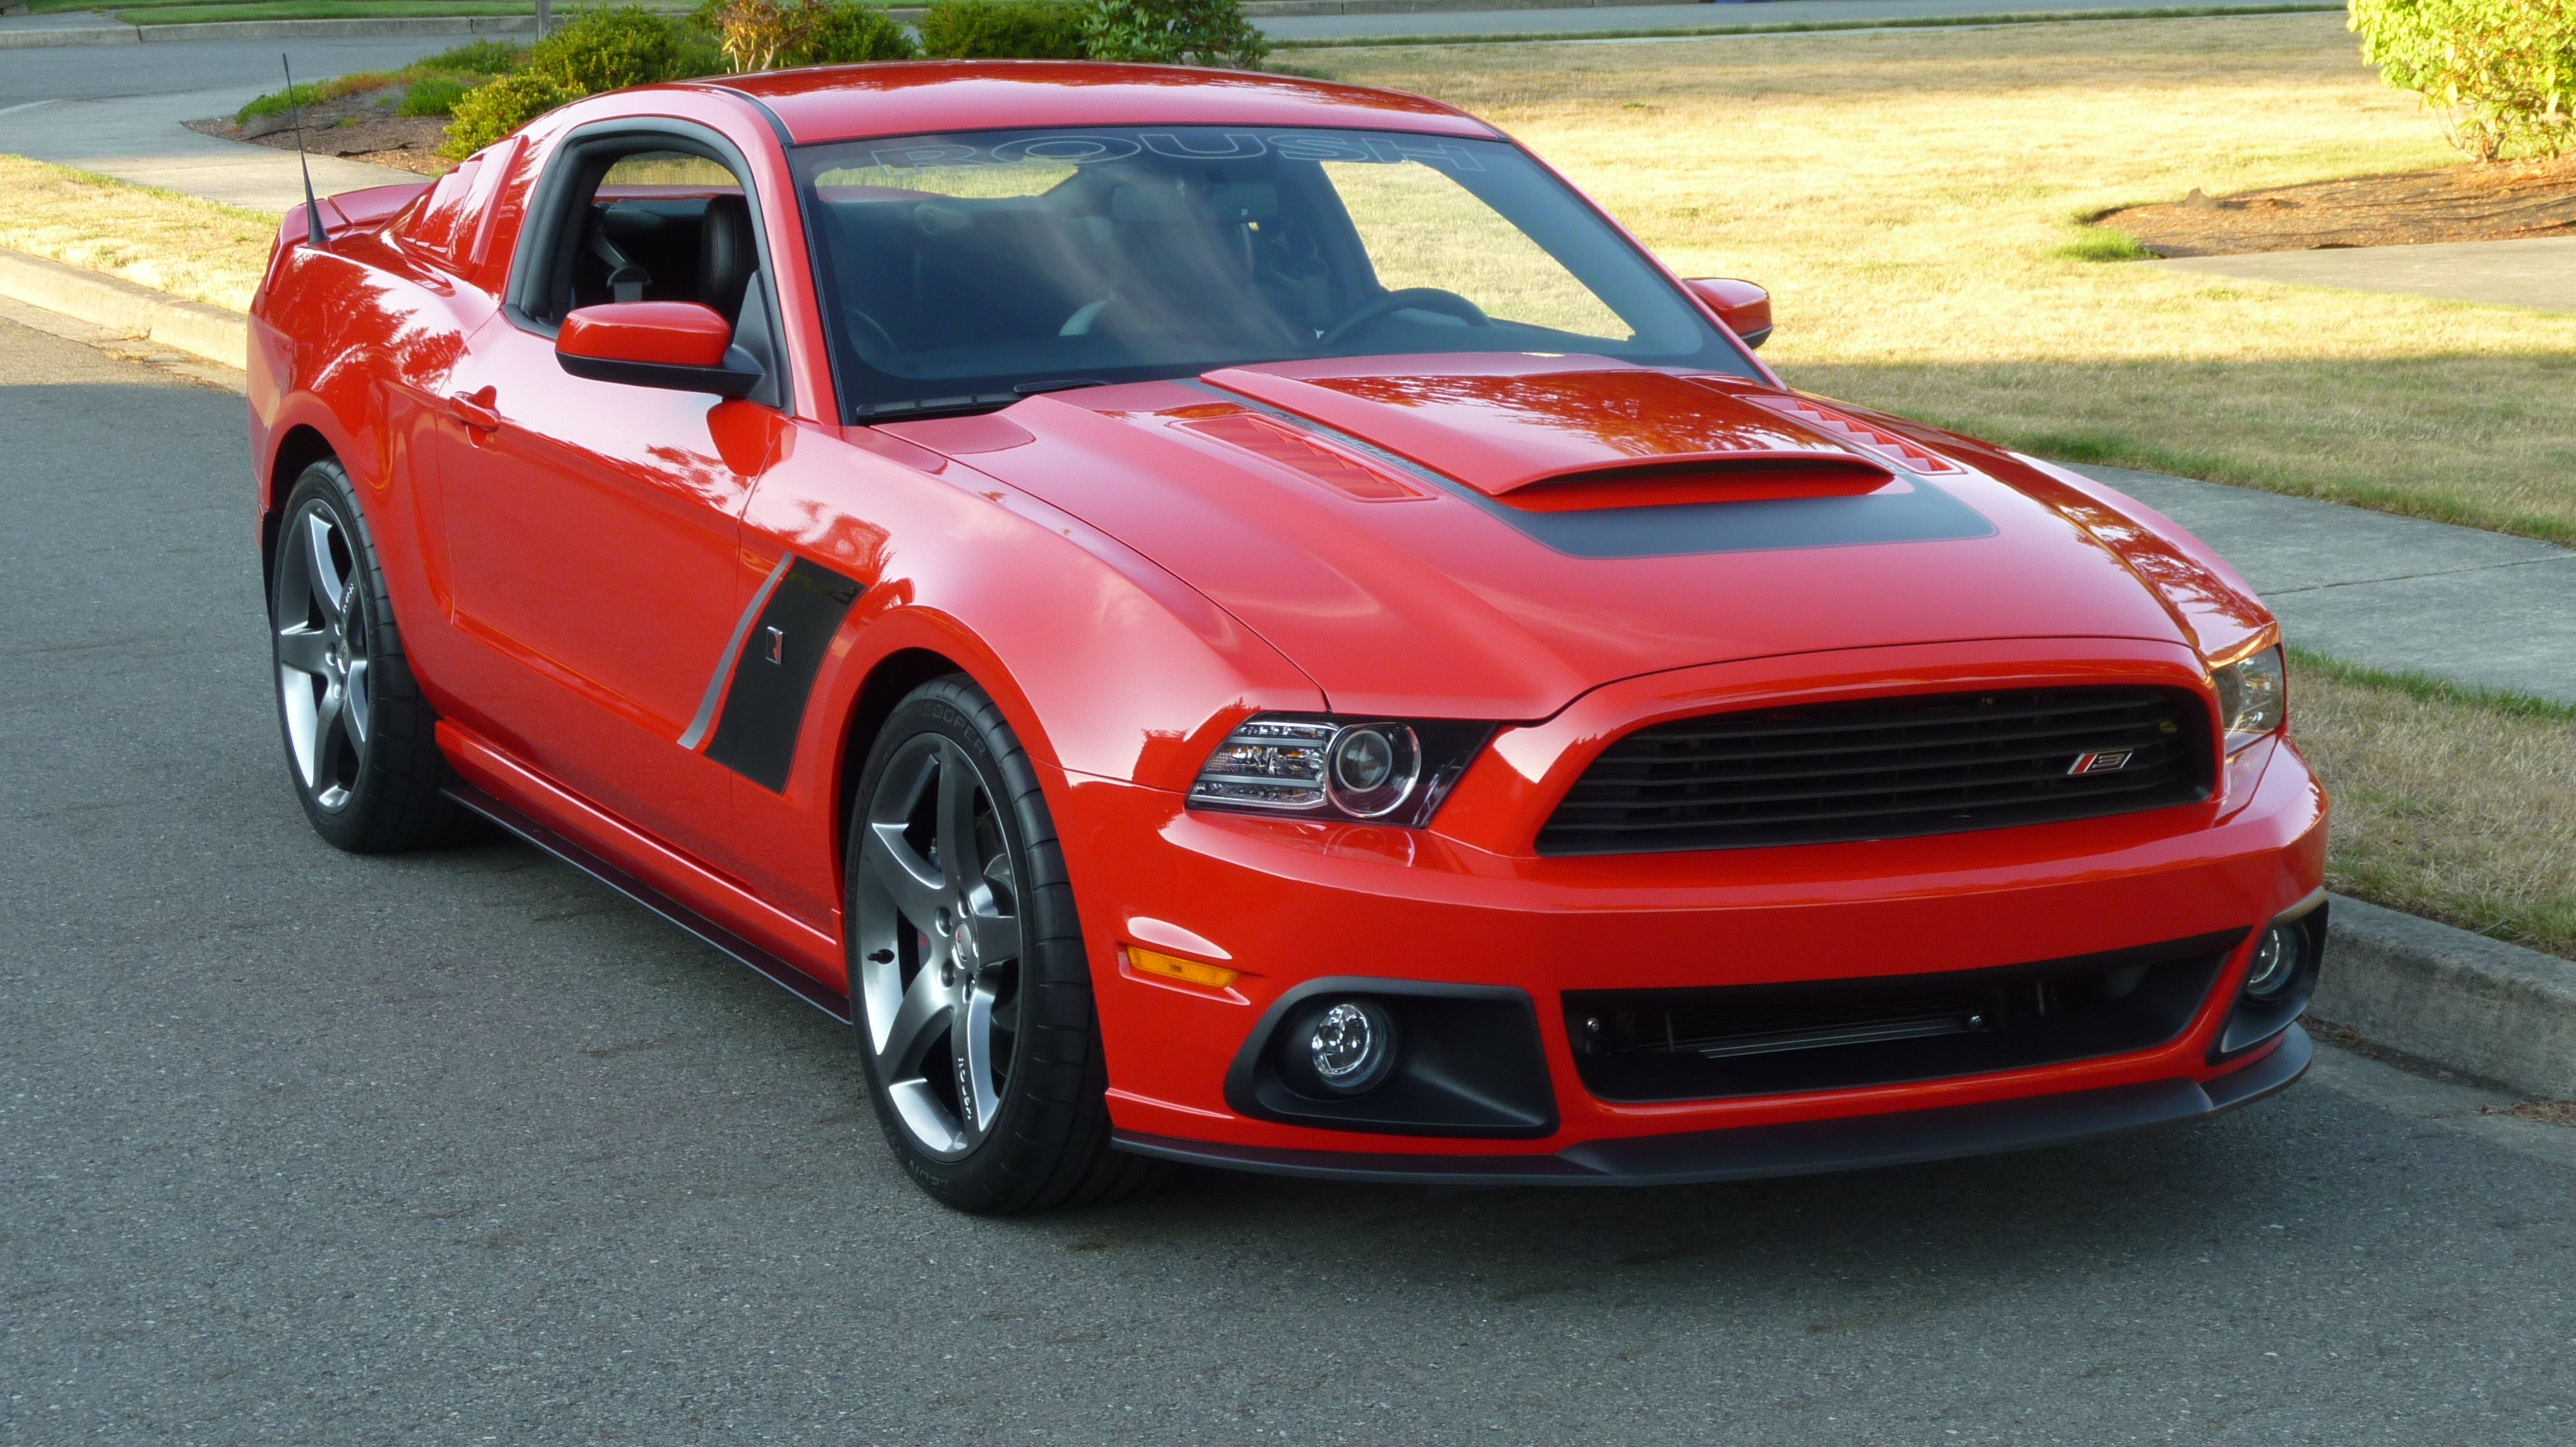 Click image for larger version  Name:New Roush 013.jpg Views:382 Size:1.37 MB ID:198499